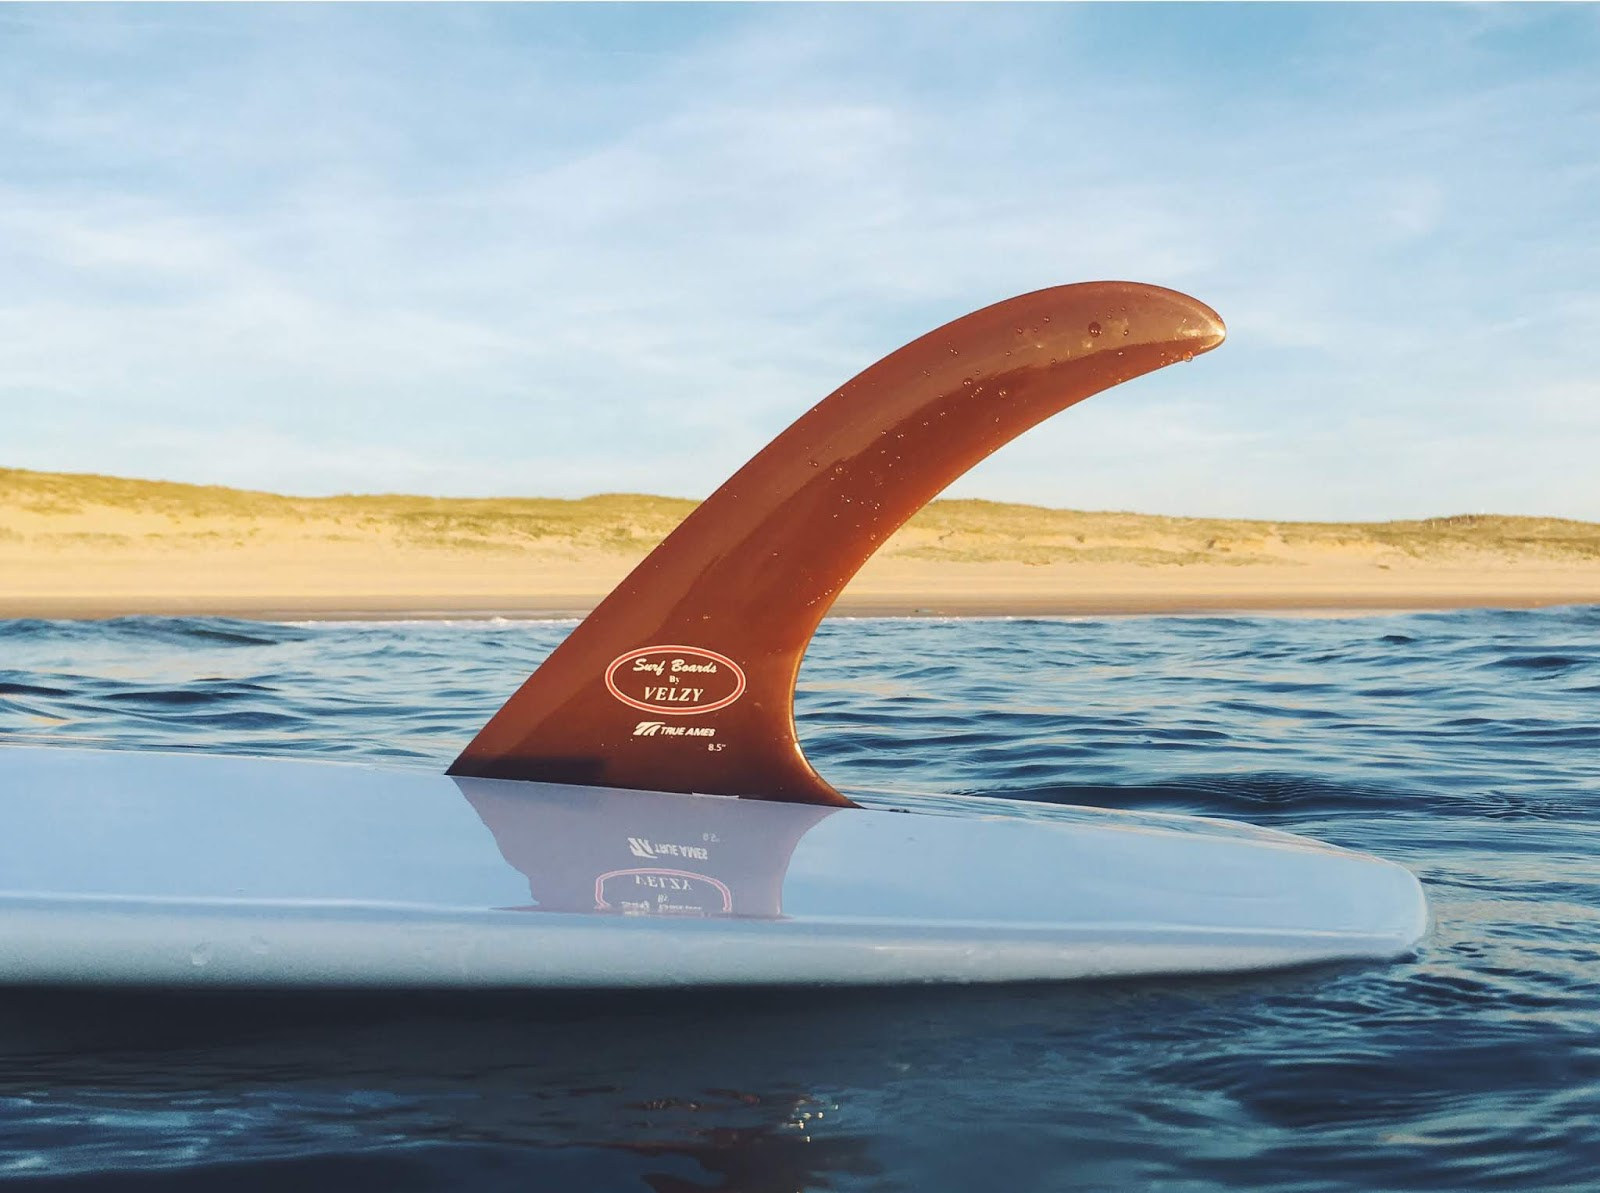 The Velzy fin on the Vee Bottom surfoard - True Ames and Surfin Estate